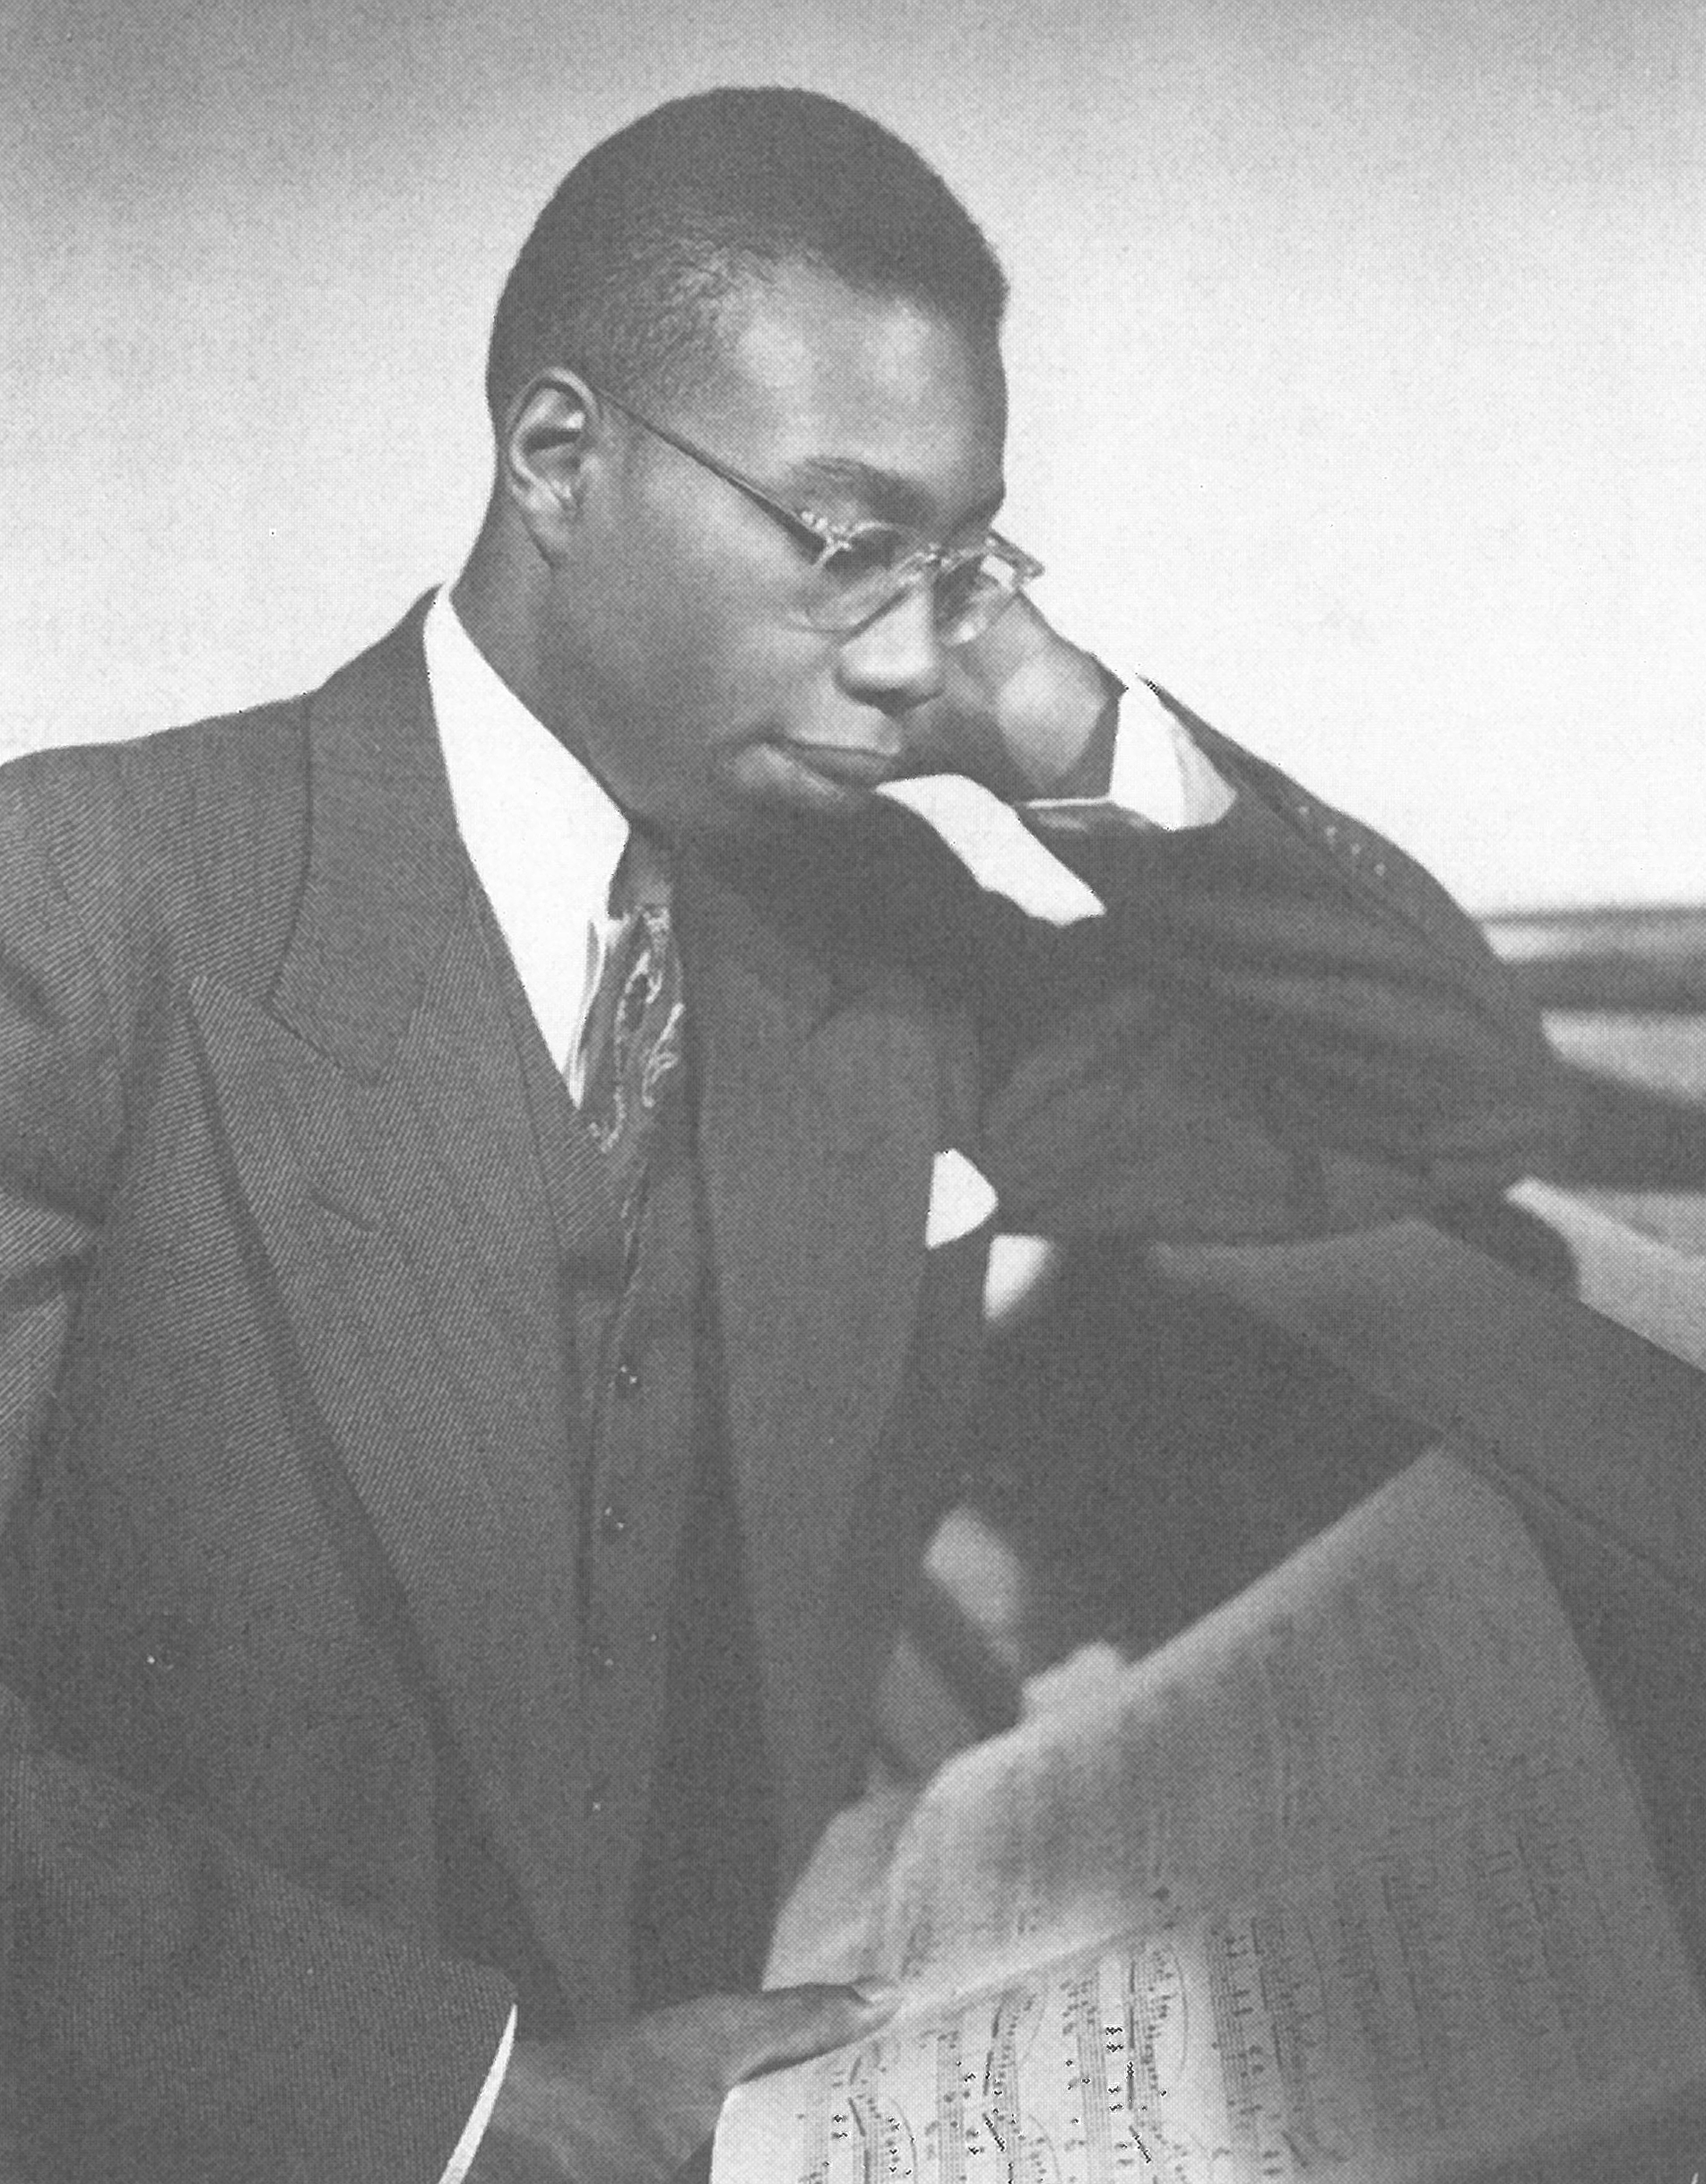 George Walker at a piano pensively studying a score in 1941.